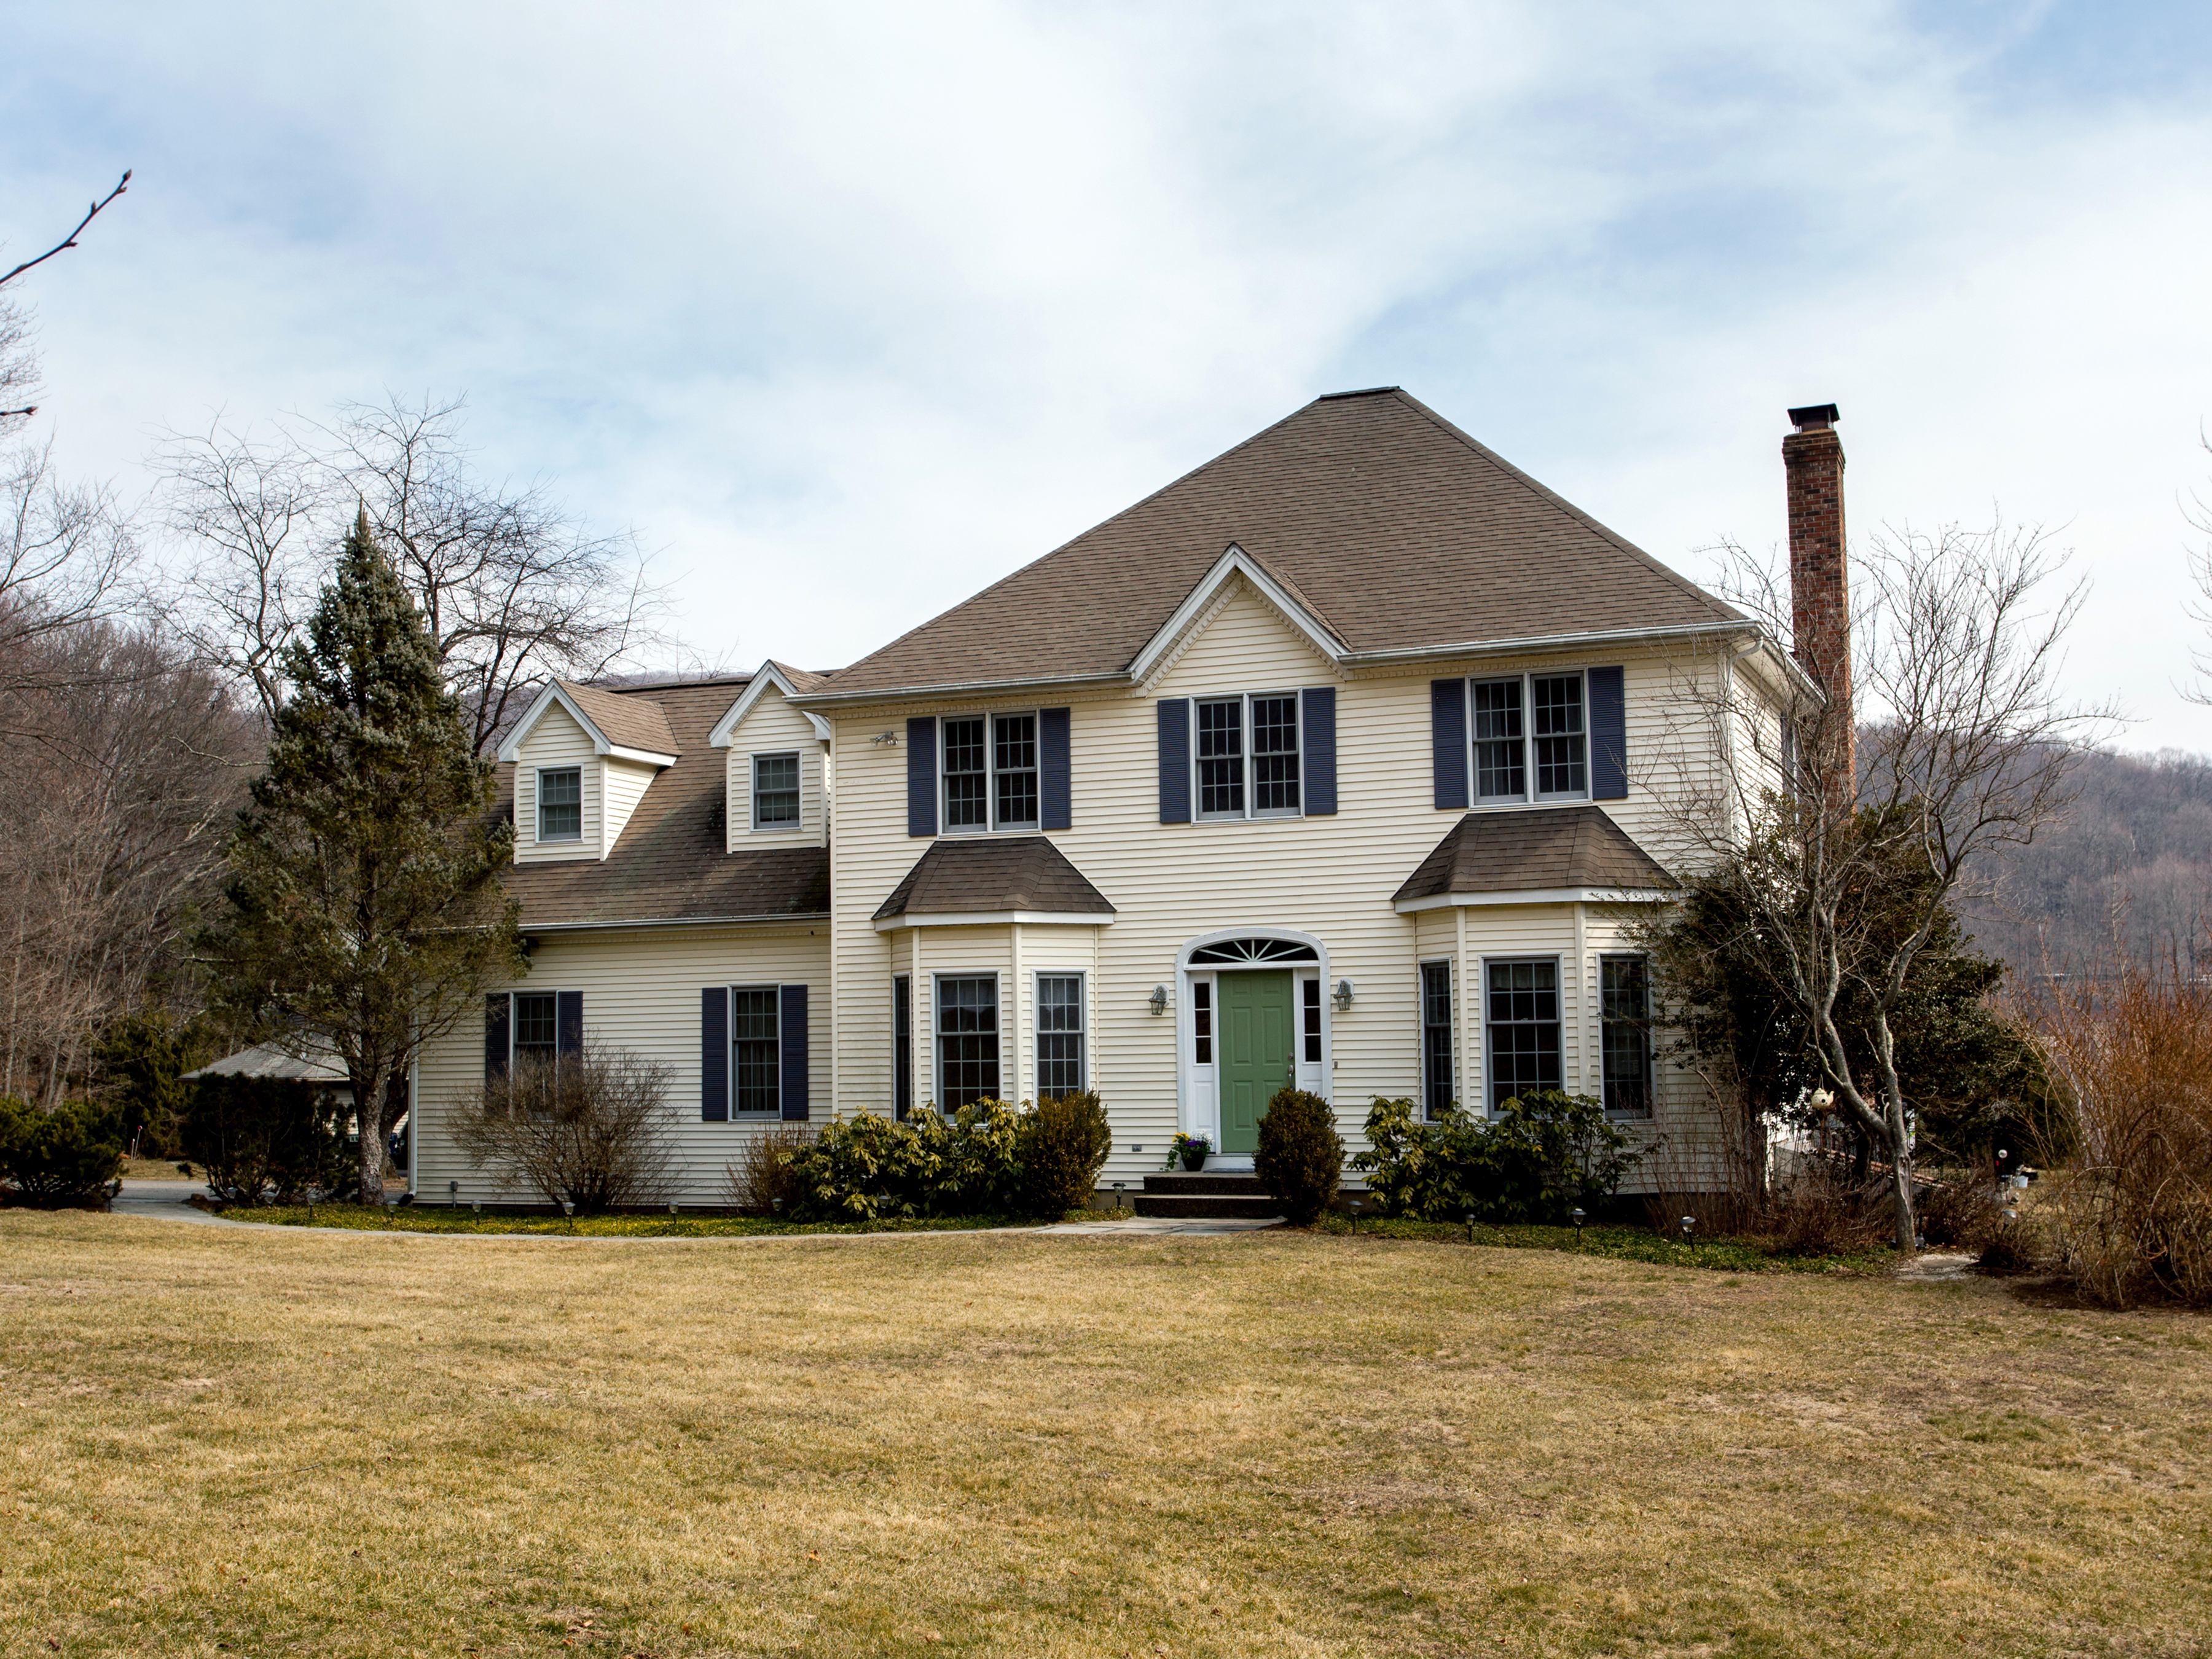 Single Family Home for Sale at Locust Glen 9 Quaker Road New Fairfield, Connecticut, 06812 United States